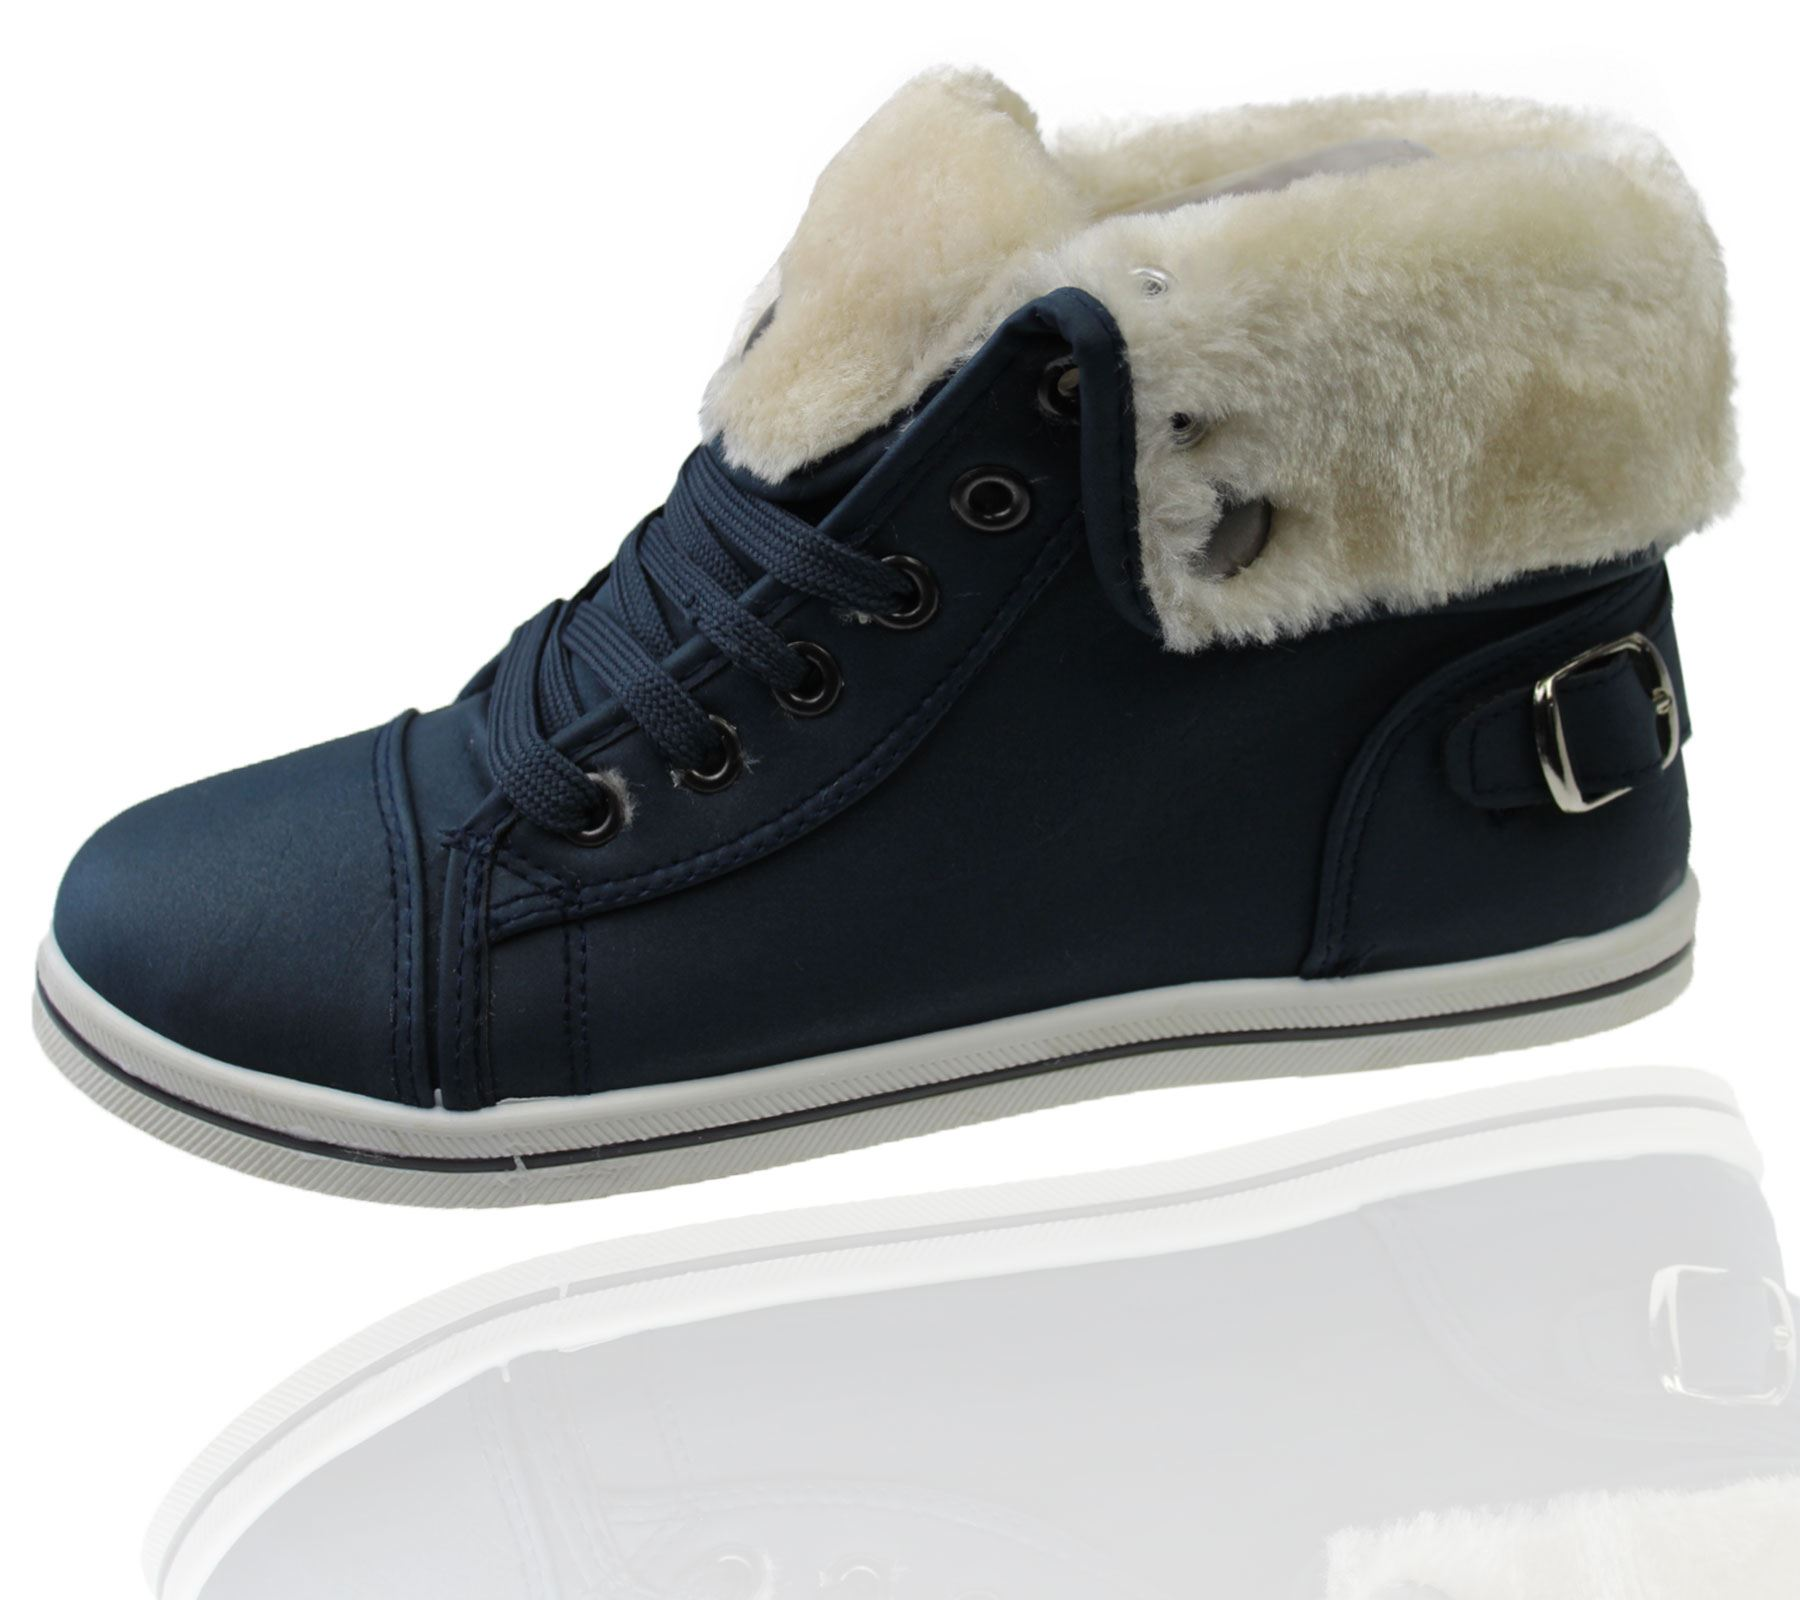 Girls-Boots-Womens-Warm-Lined-High-Top-Ankle-Trainer-Ladies-Winter-Shoes-Size miniatura 29